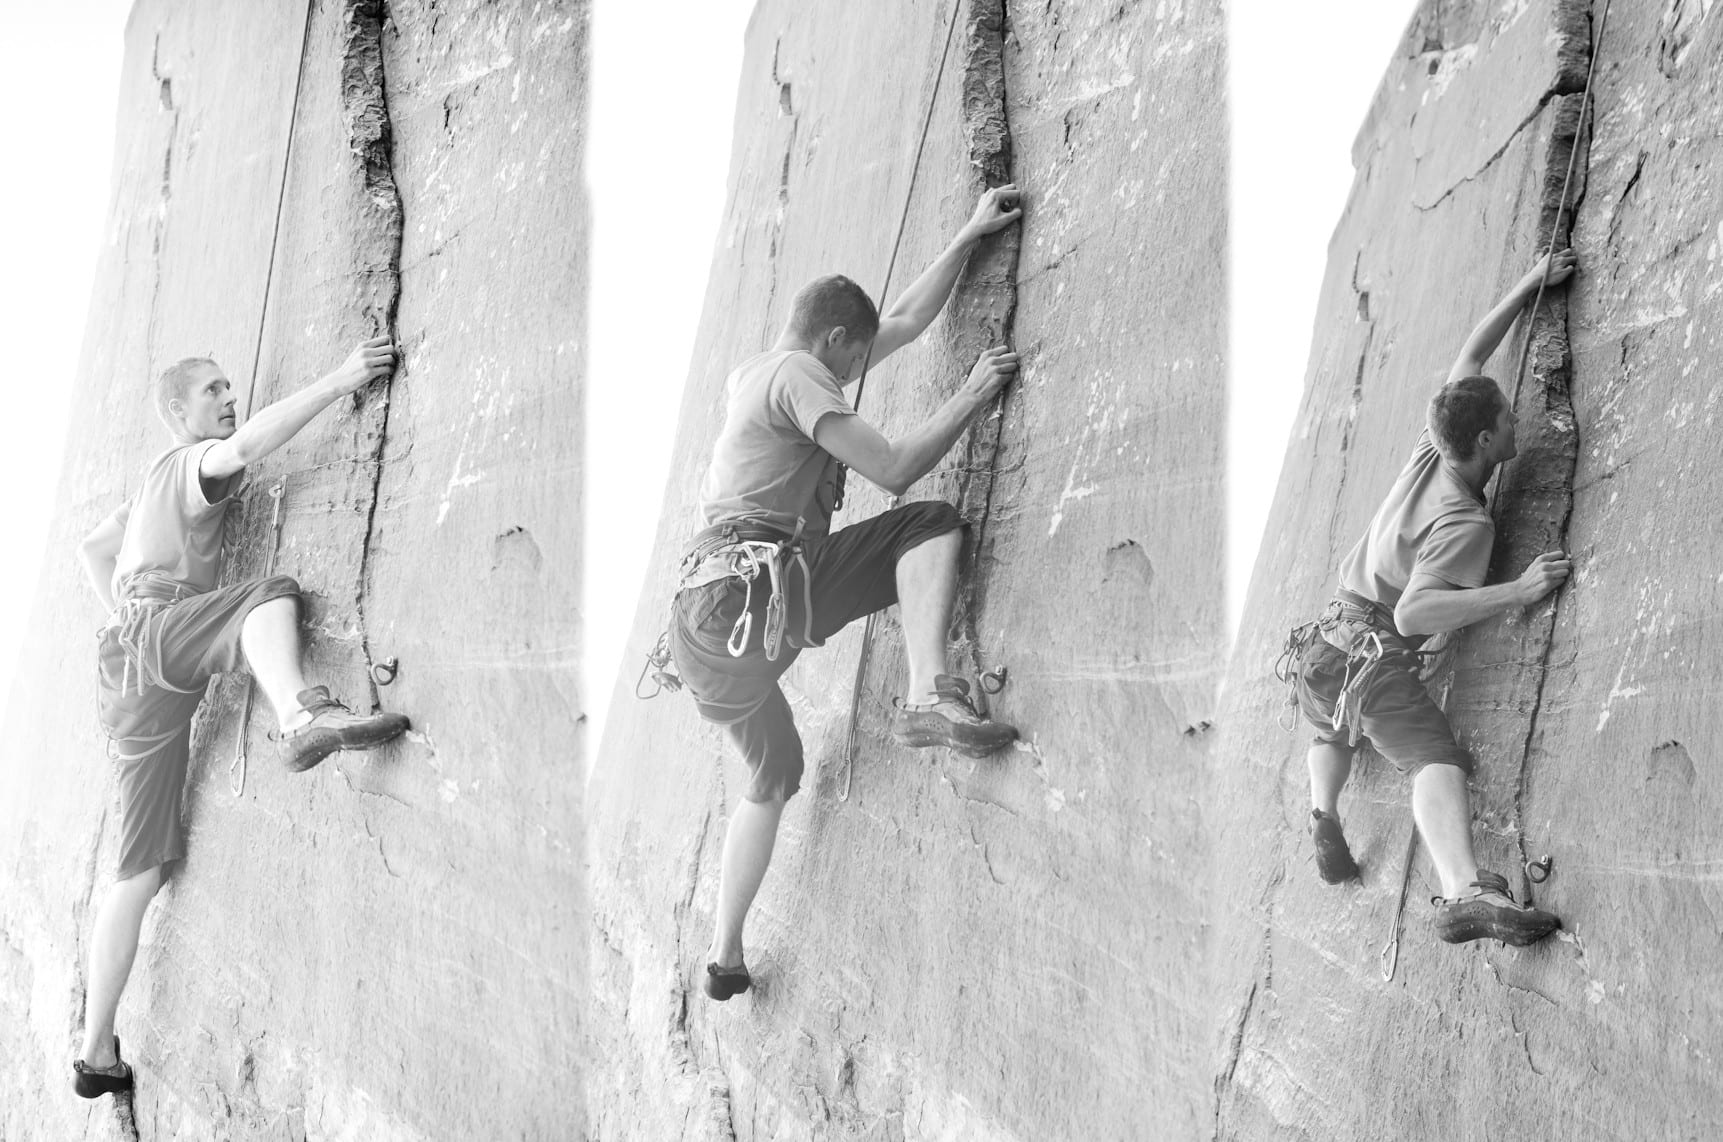 Rock Climbing | Perplexity | Taylored Photo Memoires